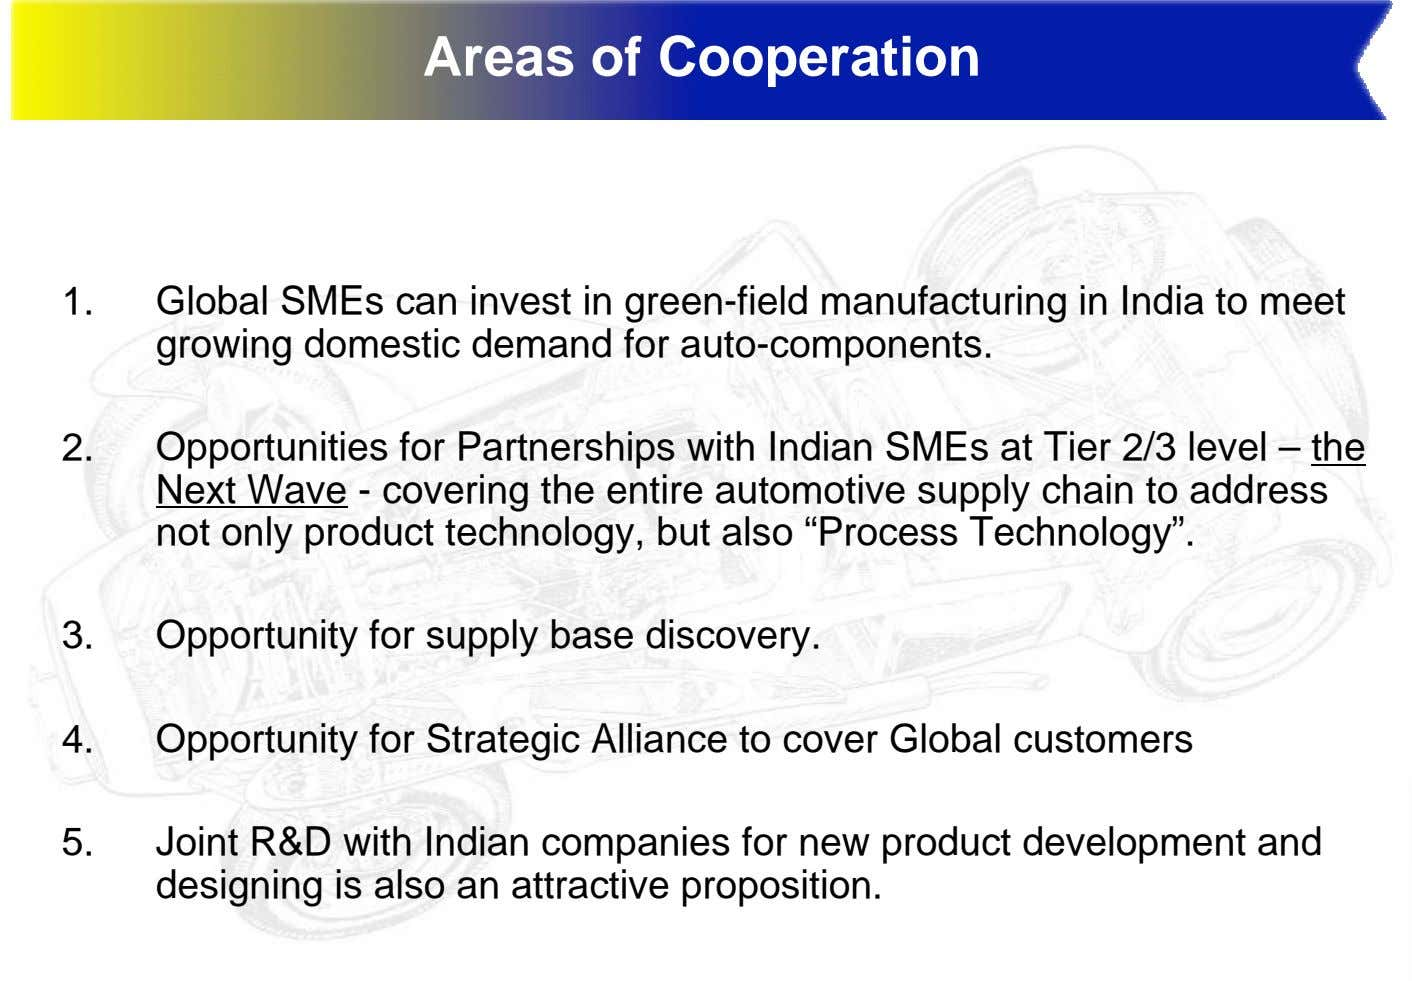 Areas of Cooperation 1. Global SMEs can invest in green-field manufacturing in India to meet